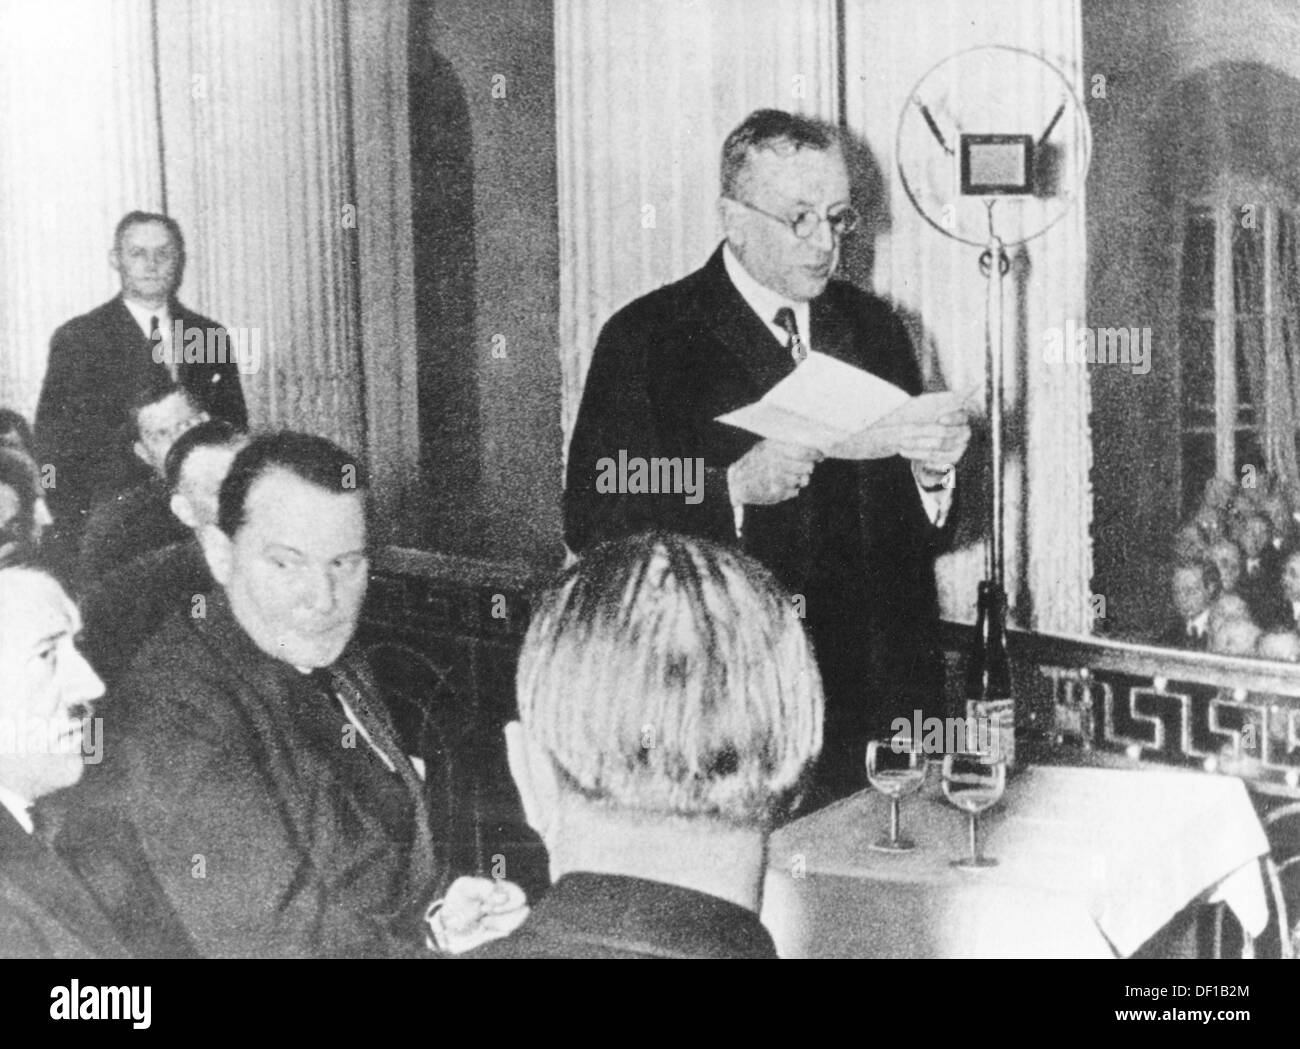 (l-r) Adolf Hitler, Hermann Göring, and the industrial magnat Fritz Thyssen (speech) are picutred in the Industrie-Club Düsseldorf (Industry Club Düsseldorf) in Germany on 26 January 1932. Thyssen invited Hitler do deliver a speech to present industrial magnats, bankers, and farmers. Photo: Berliner Verlag/Archiv - Stock Image